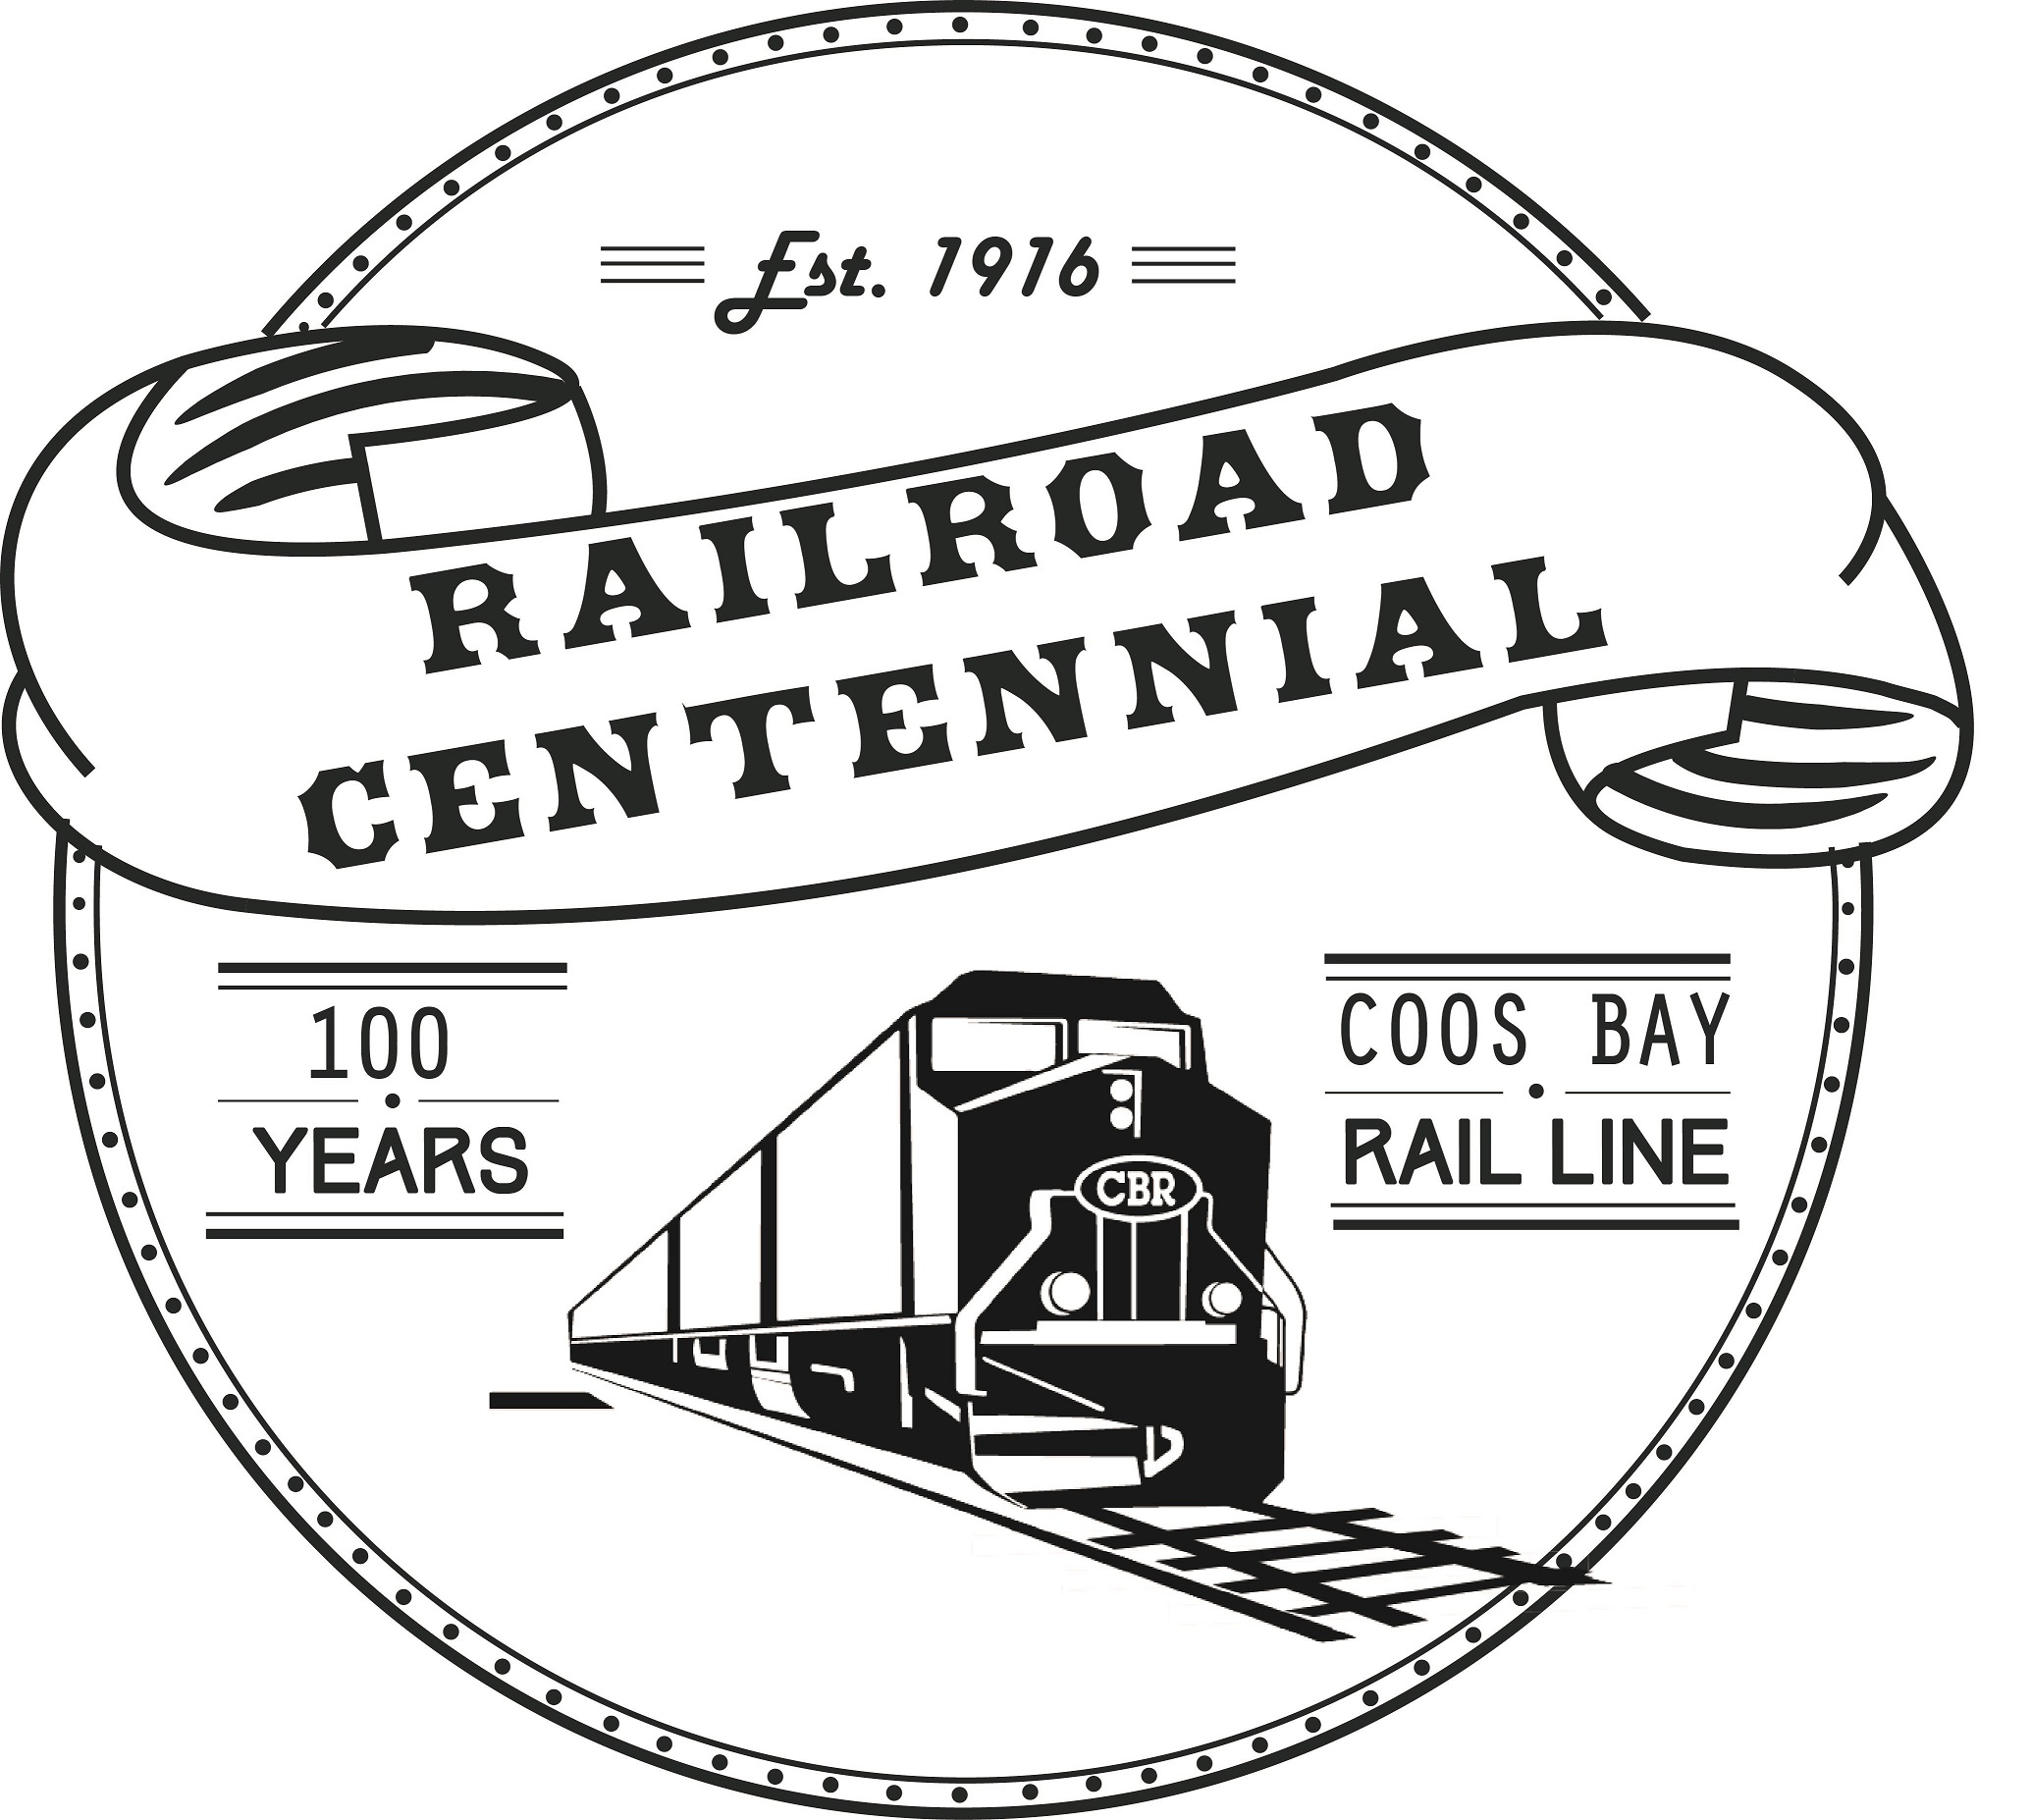 small resolution of port of coos bay celebrates 100 years of the coos bay rail line at the railroad centennial celebration port of coos bay oregon s seaport